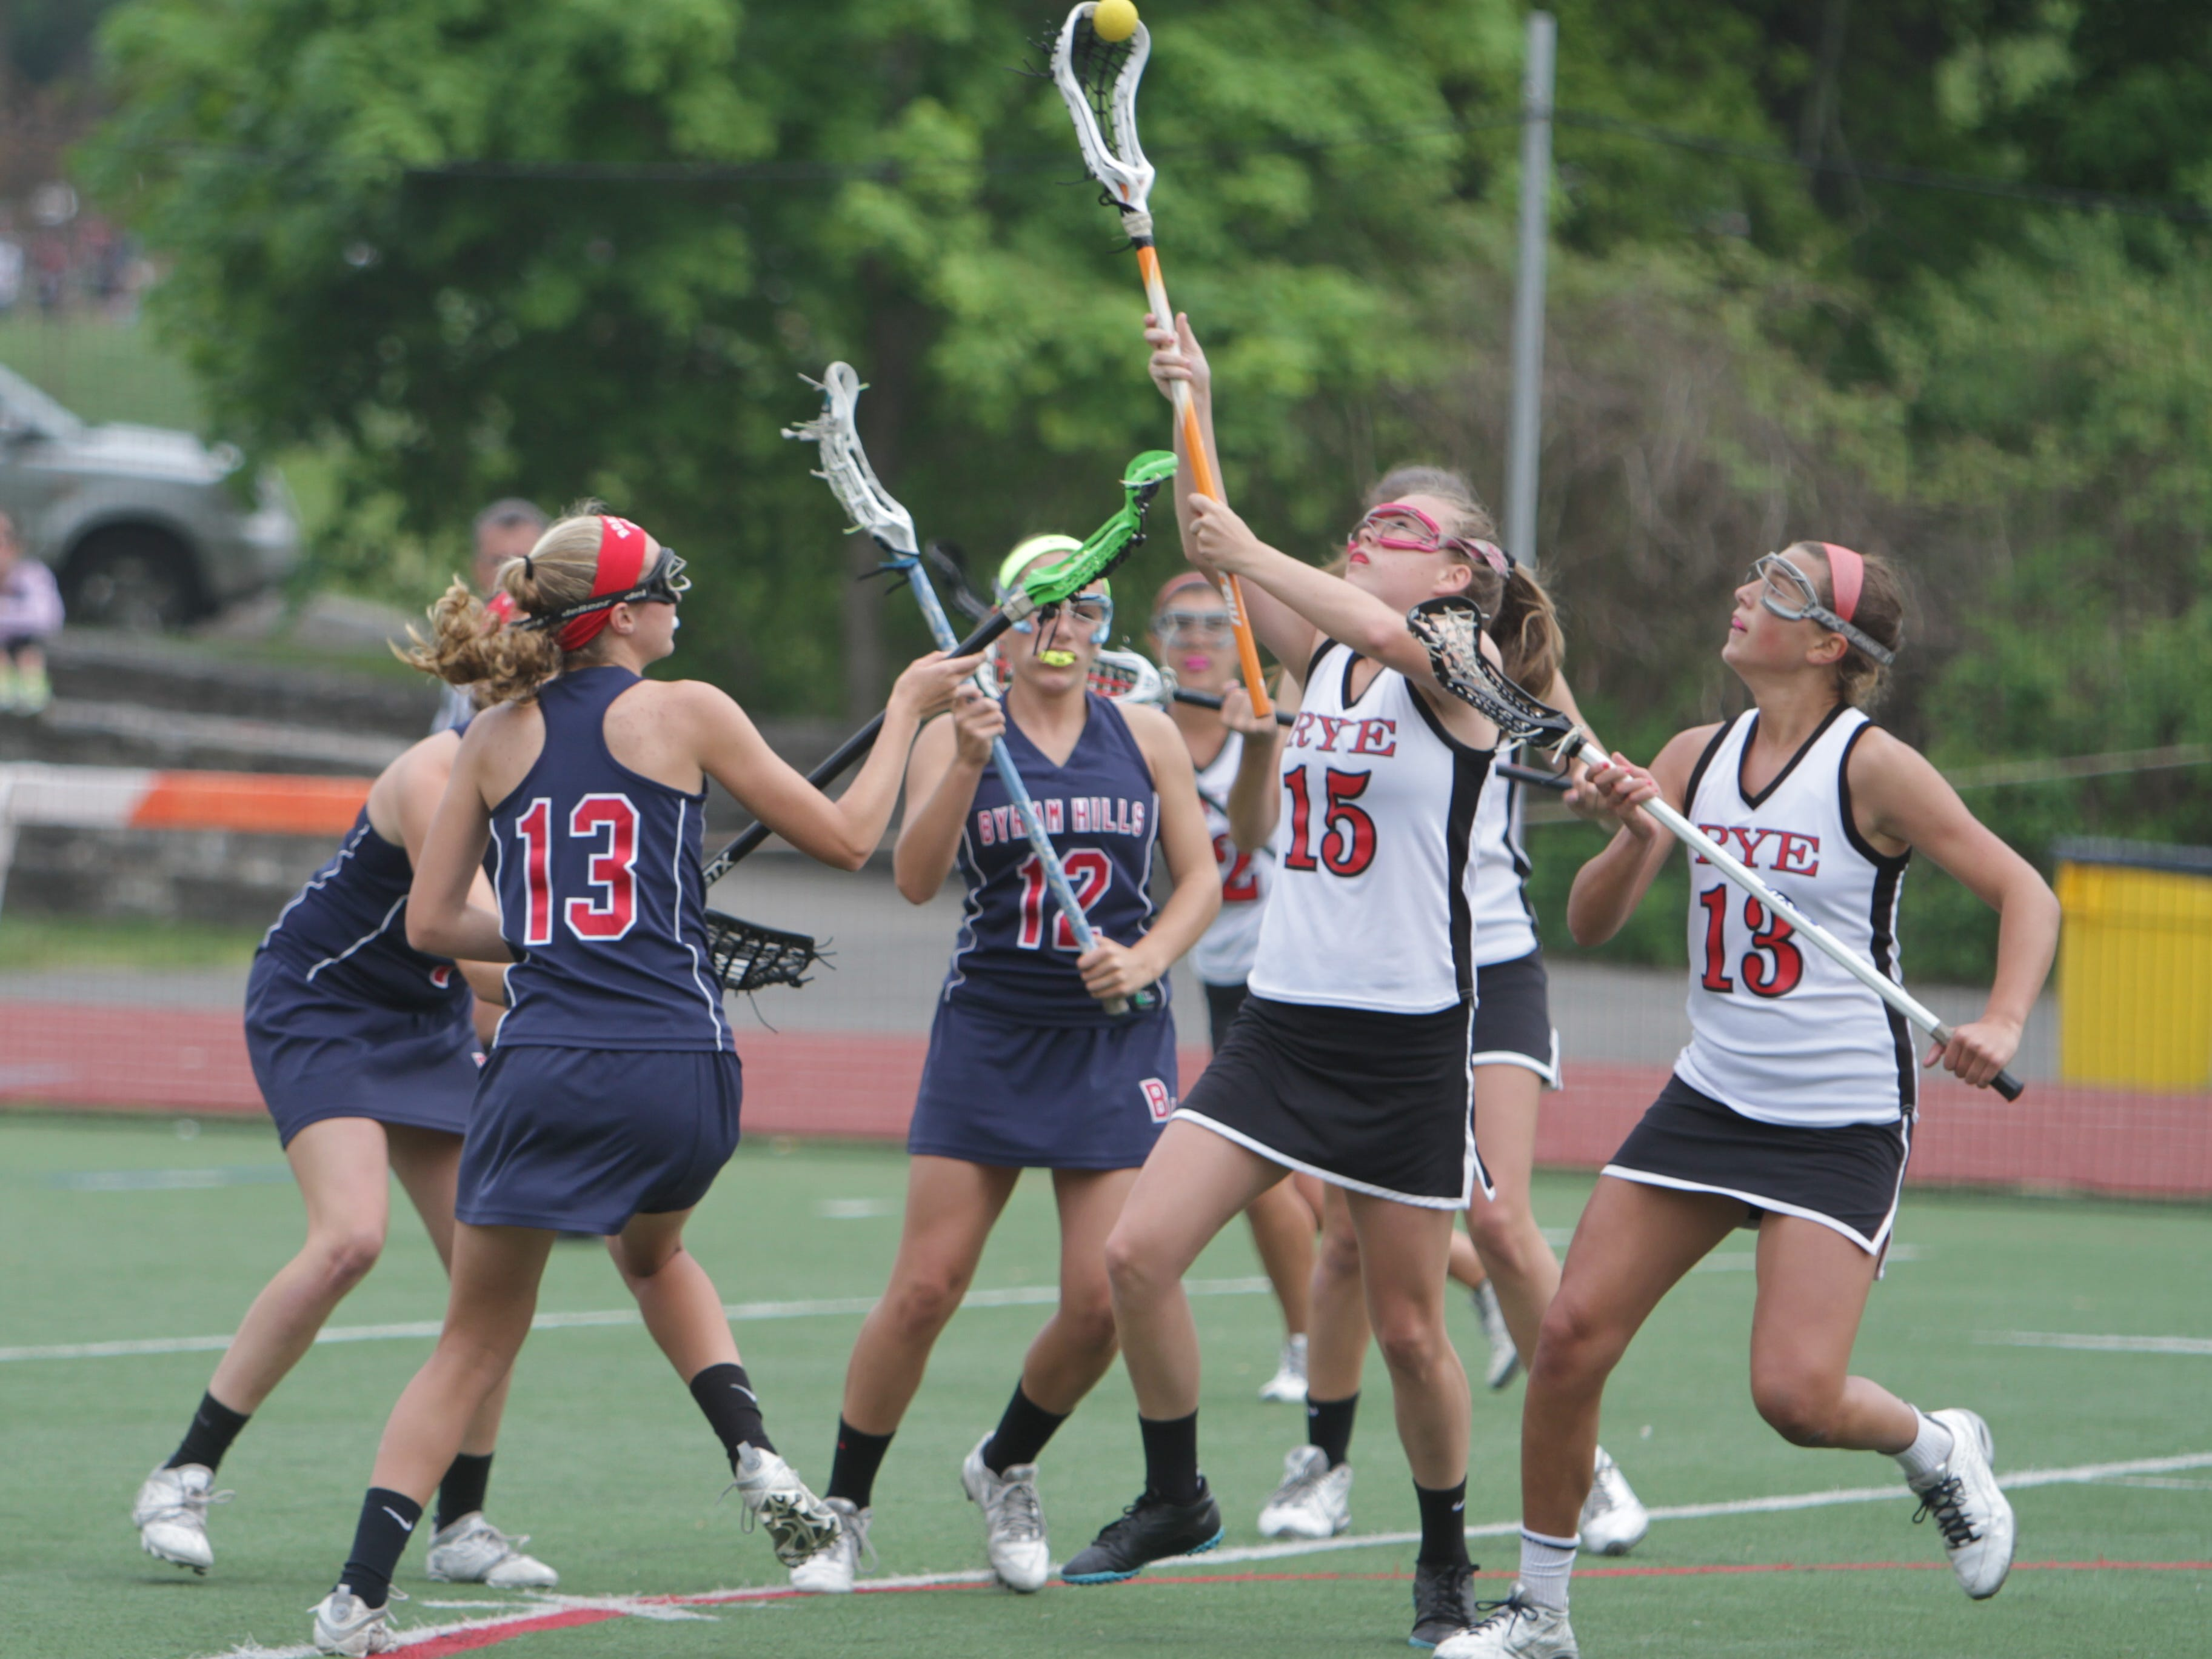 Rye's Caroline Hyland (15) attempts to reach a loose ball during a Class B quarterfinal game against visiting Byram Hills. Rye won 14-10.